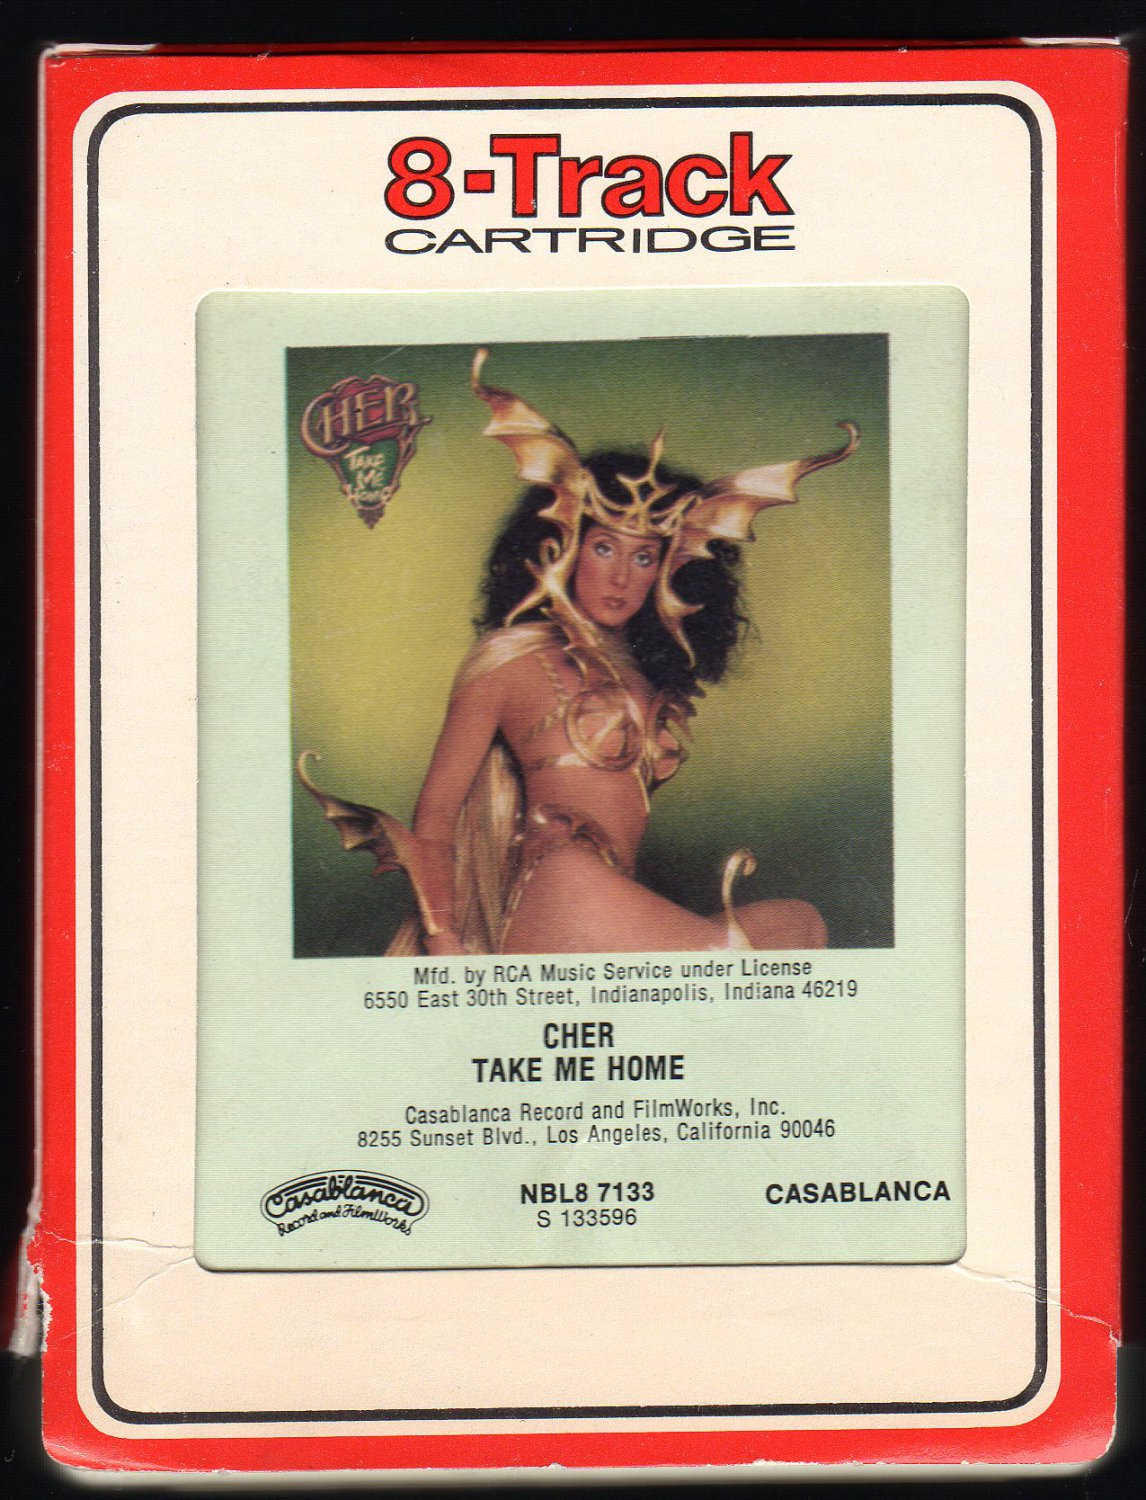 Cher (ilyn) Sarkisian - Take Me Home 1979 RCA CASABLANCA T7 8-TRACK TAPE